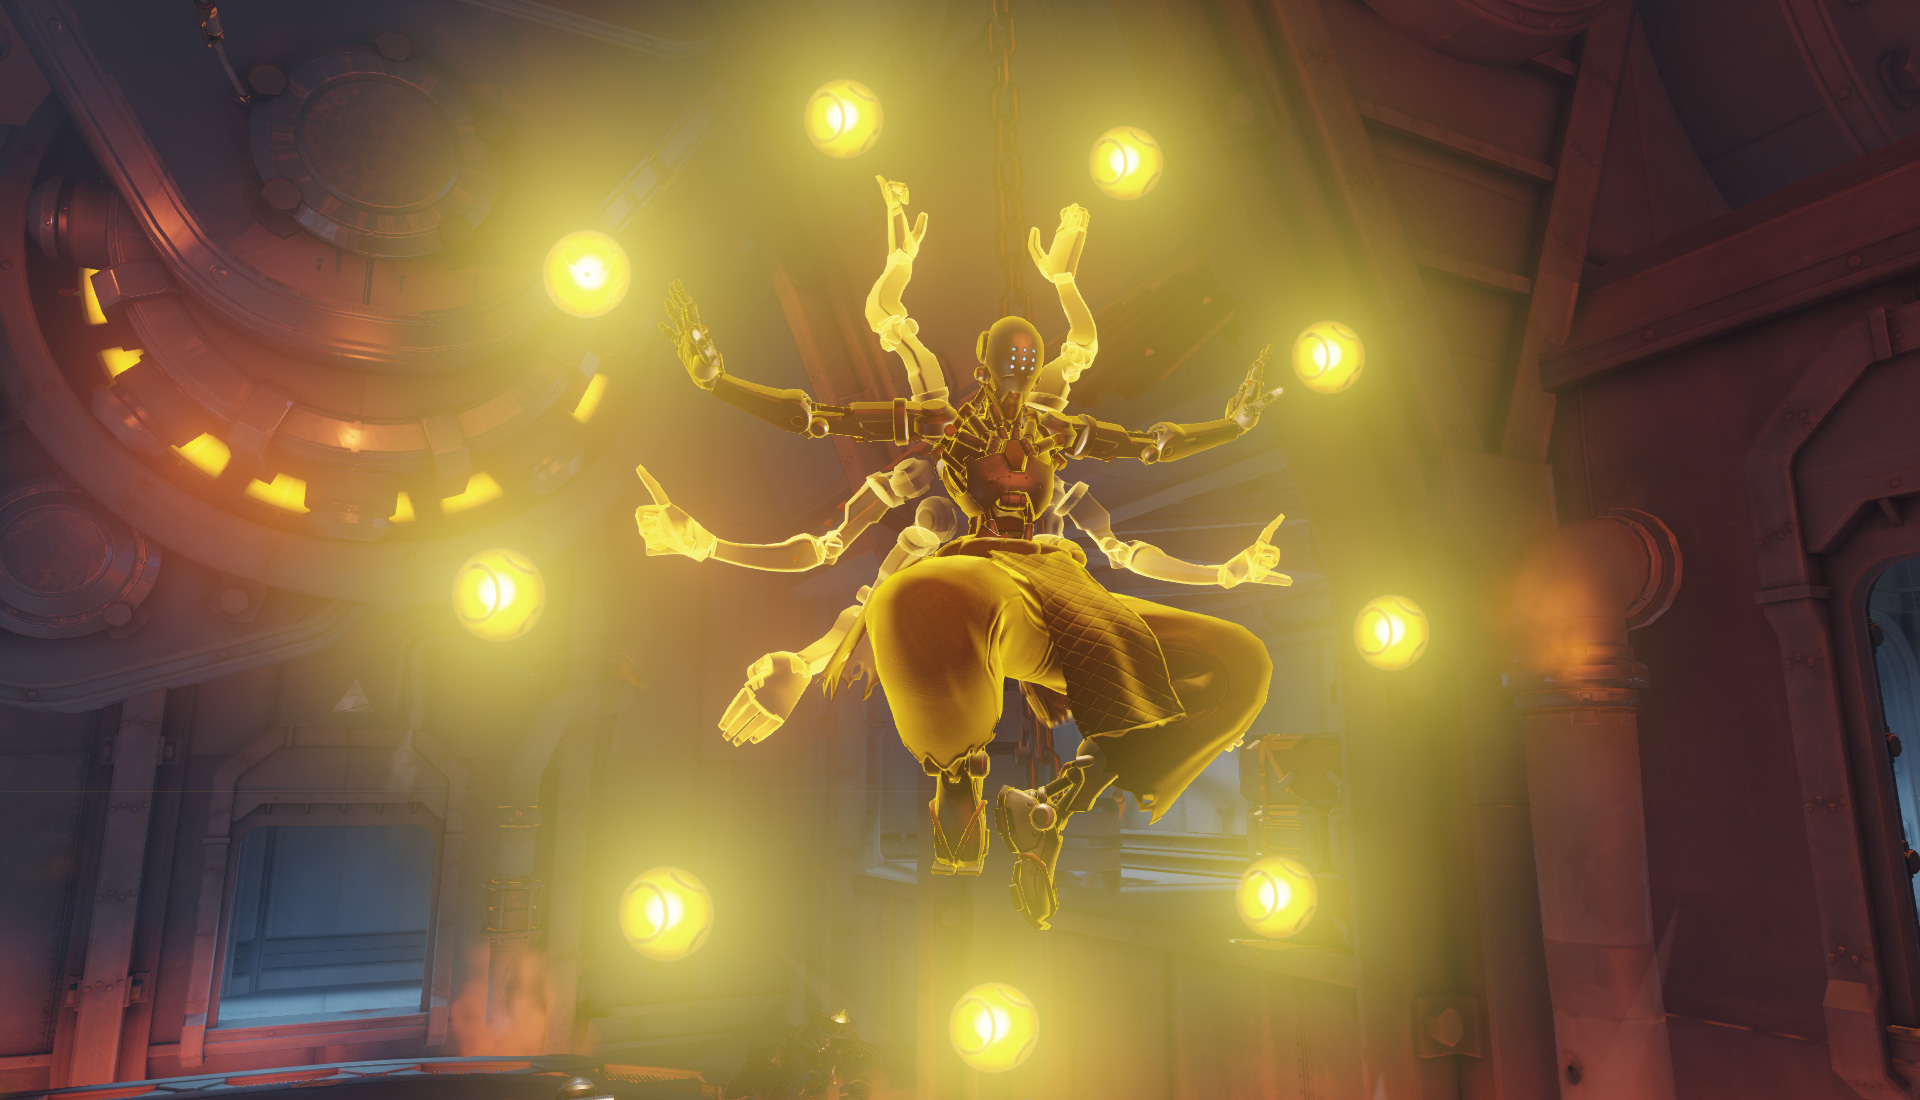 https://d1u1mce87gyfbn.cloudfront.net/media/screenshot/zenyatta-screenshot-001.jpg